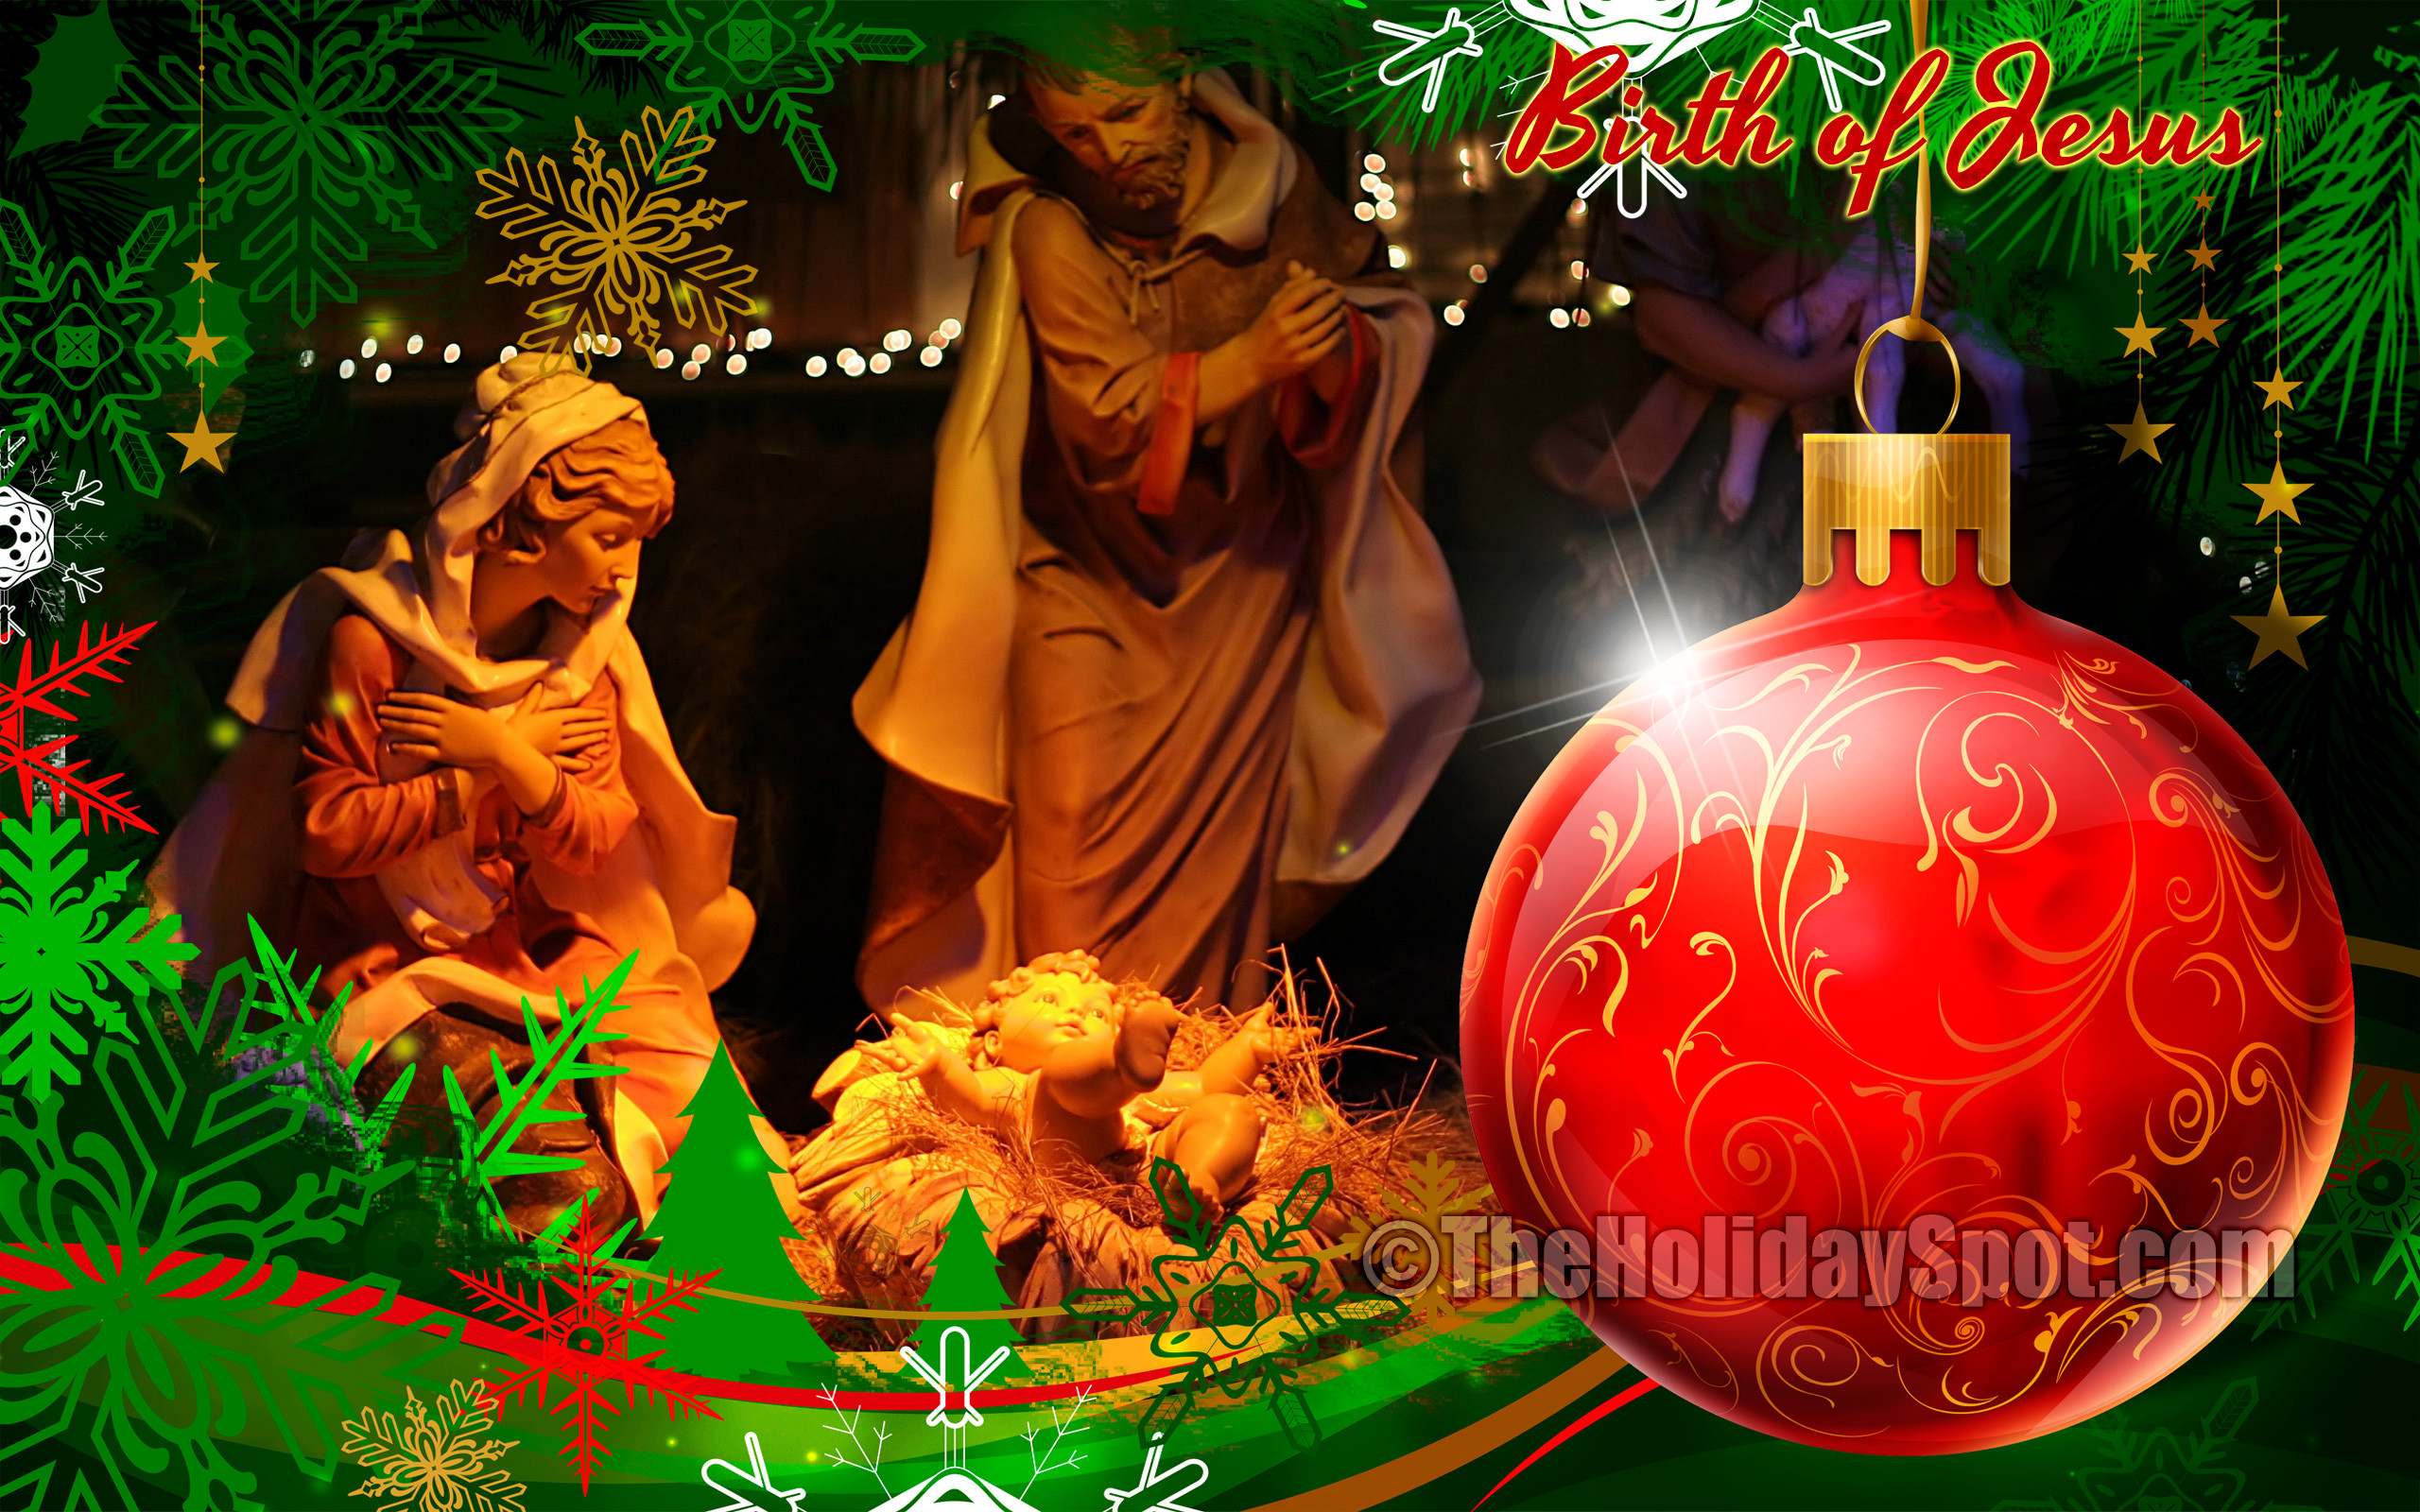 Christmas Wallpaper showing glowing earth during birth of jesus